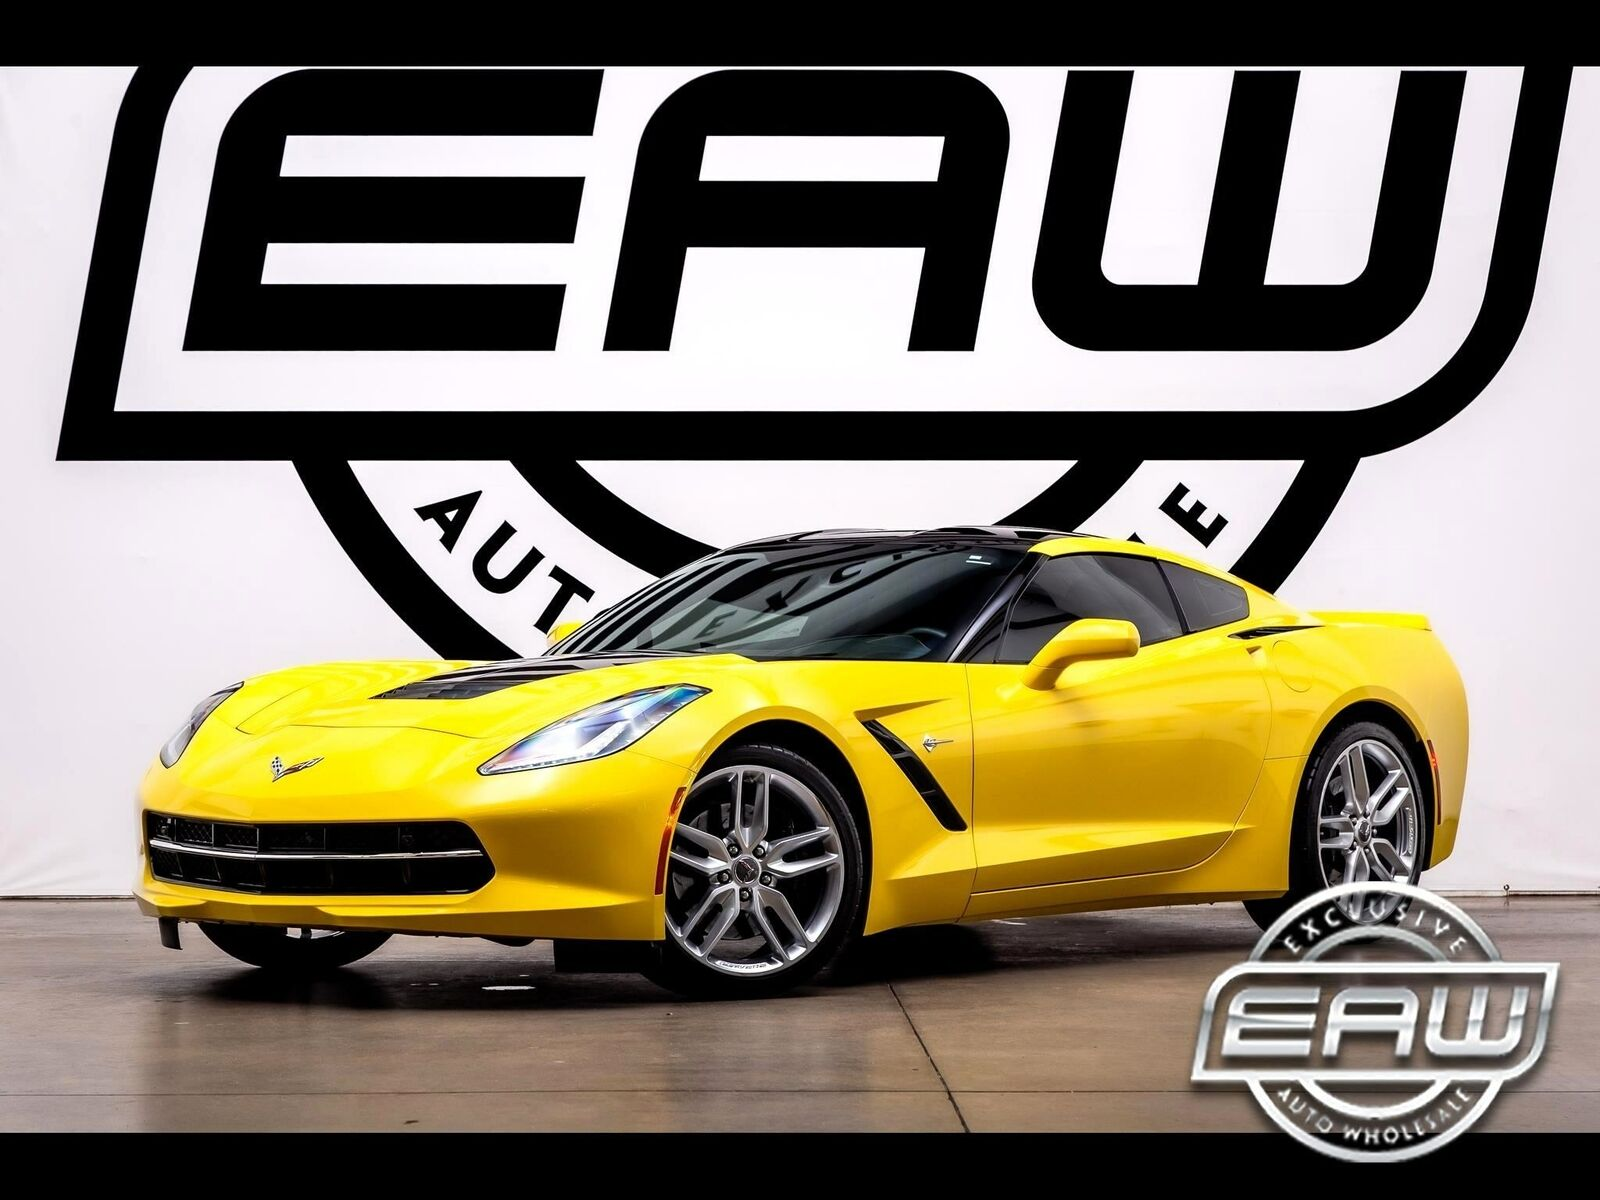 2016 Yellow Chevrolet Corvette Stingray 2LT | C7 Corvette Photo 1